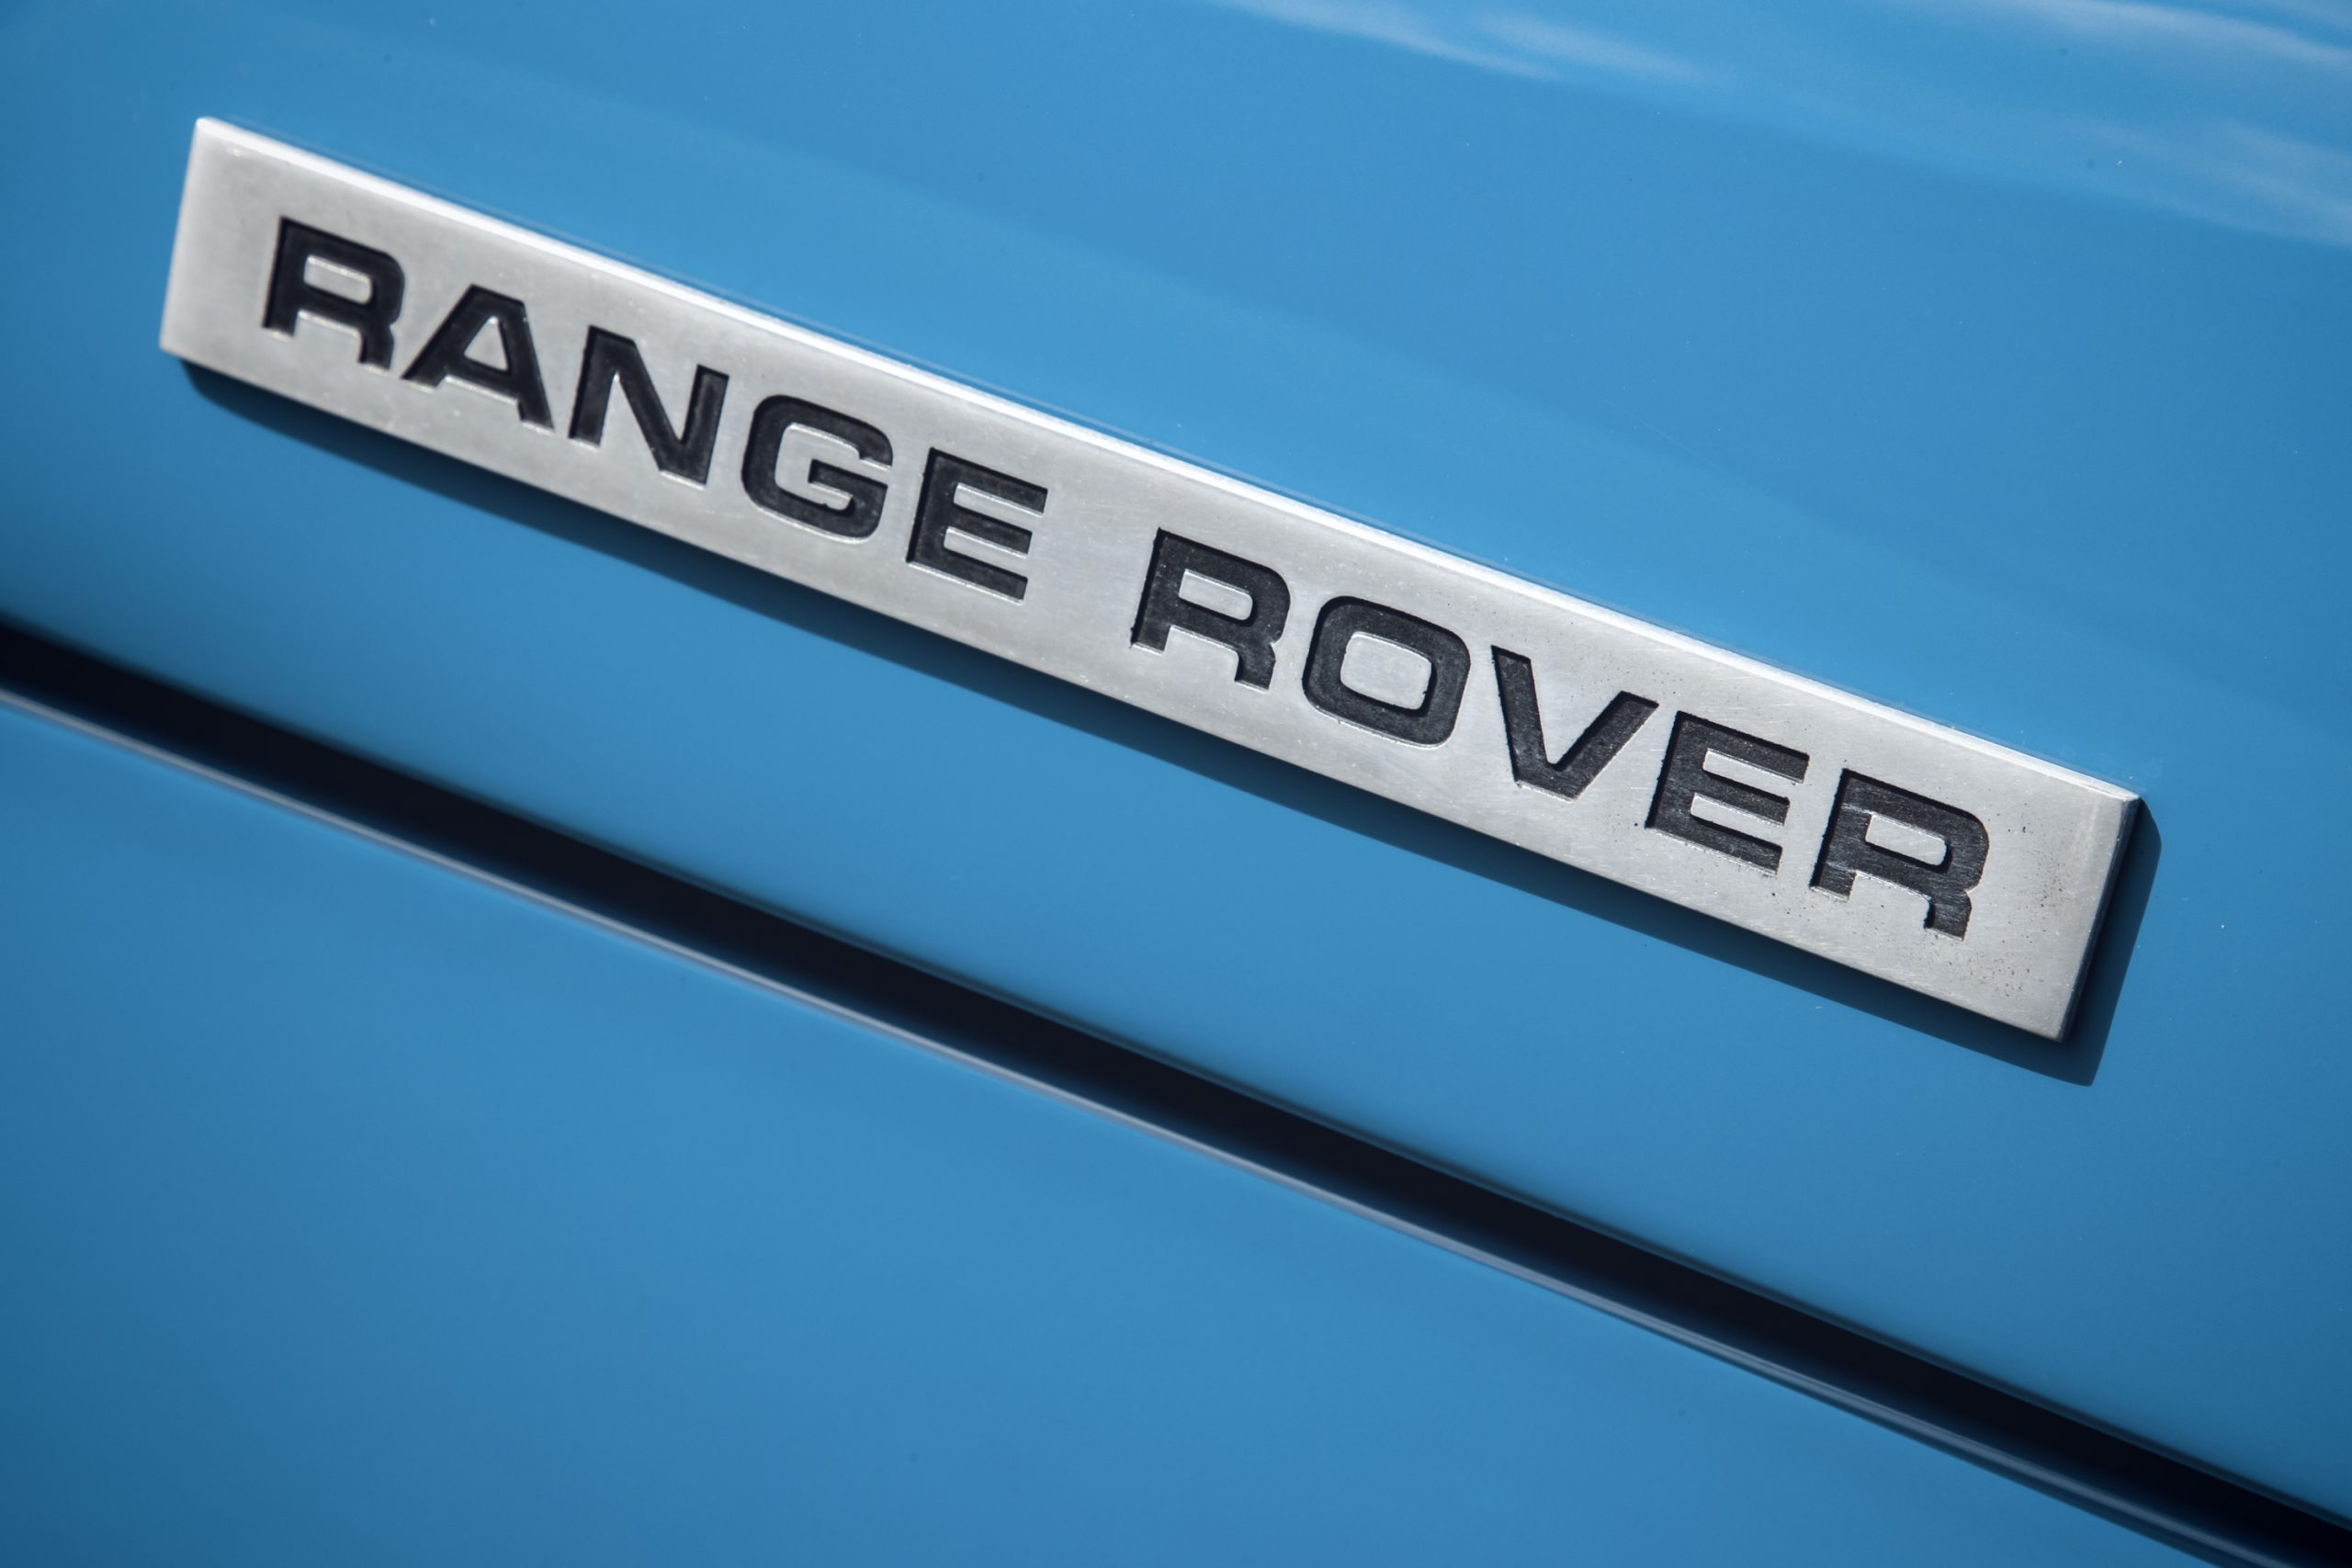 1970 Range Rover Badge